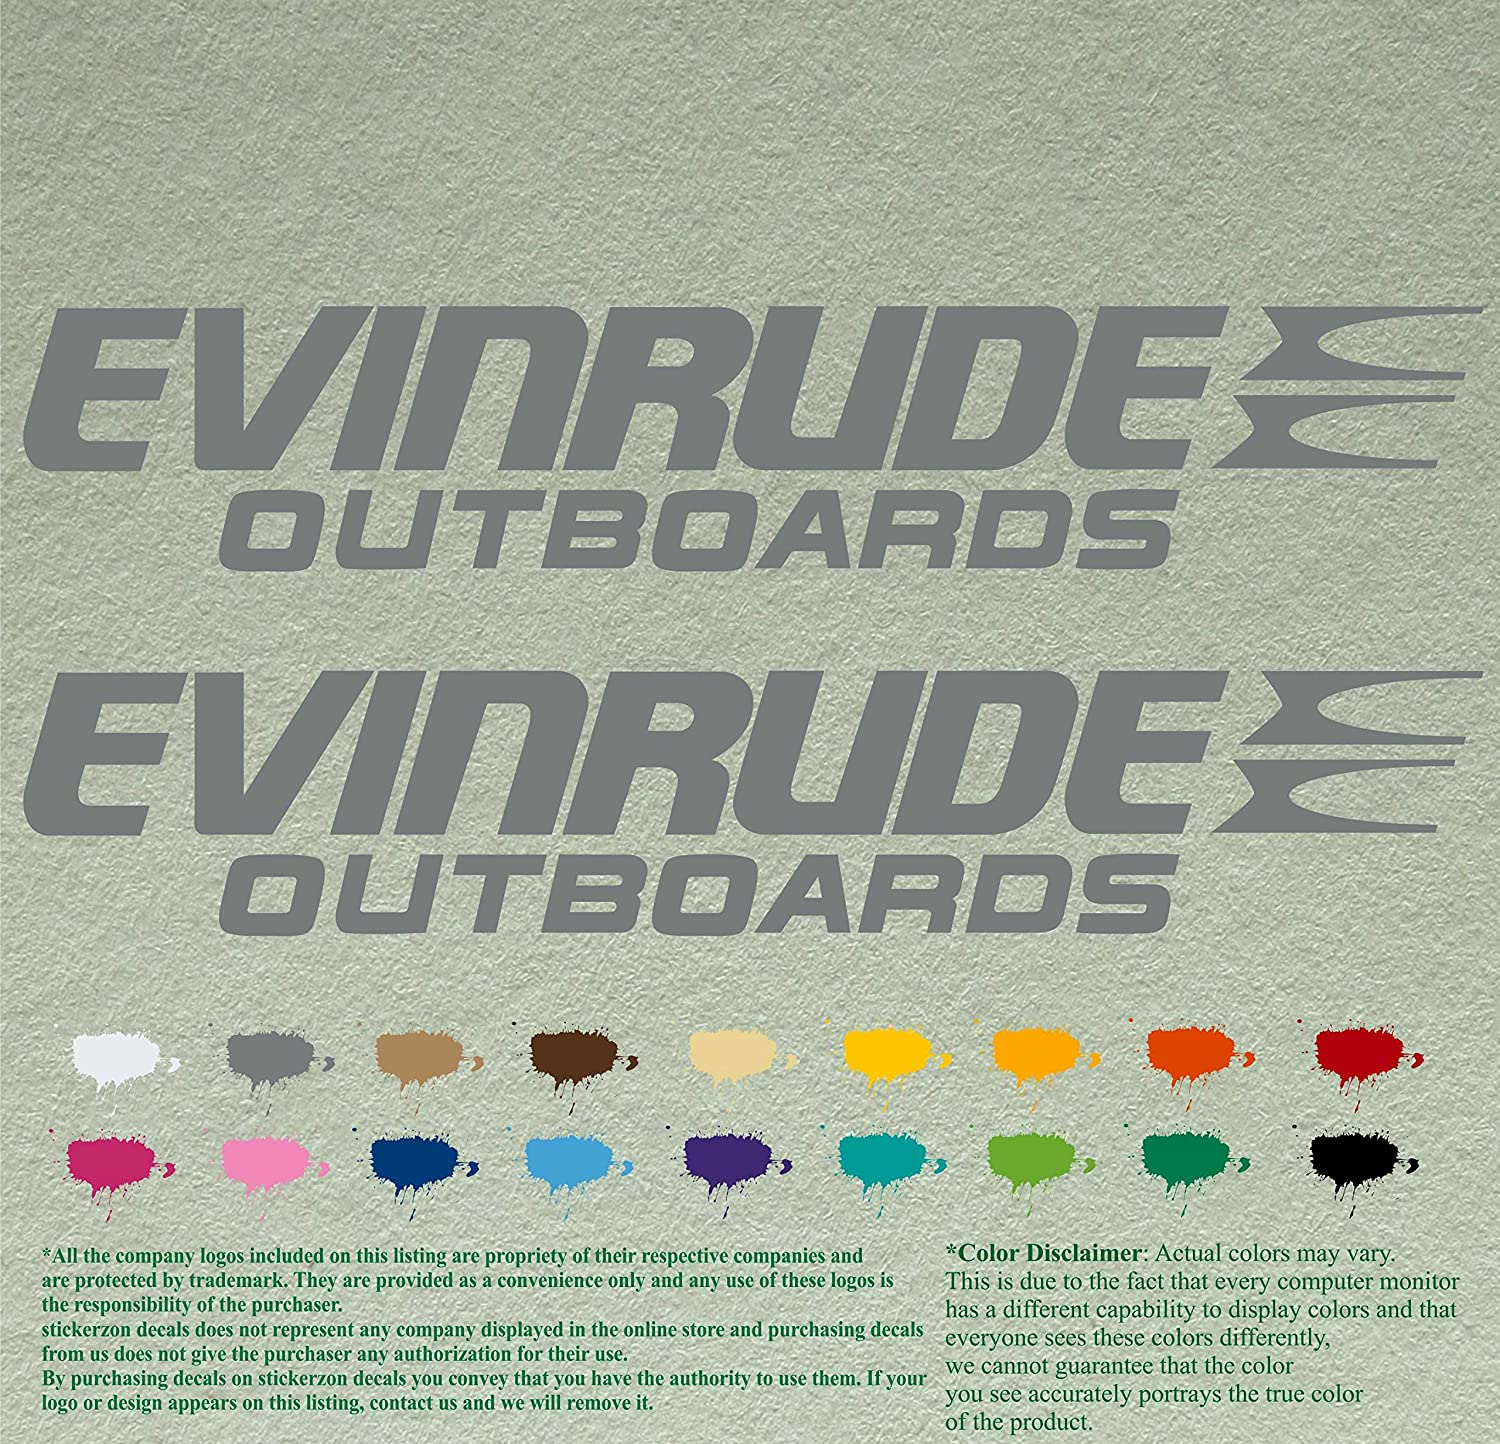 Pair of Evinrude Outboards Decals Vinyl Stickers Boat Outboard Motor Lot of 2 (12 inch, Grey 071)